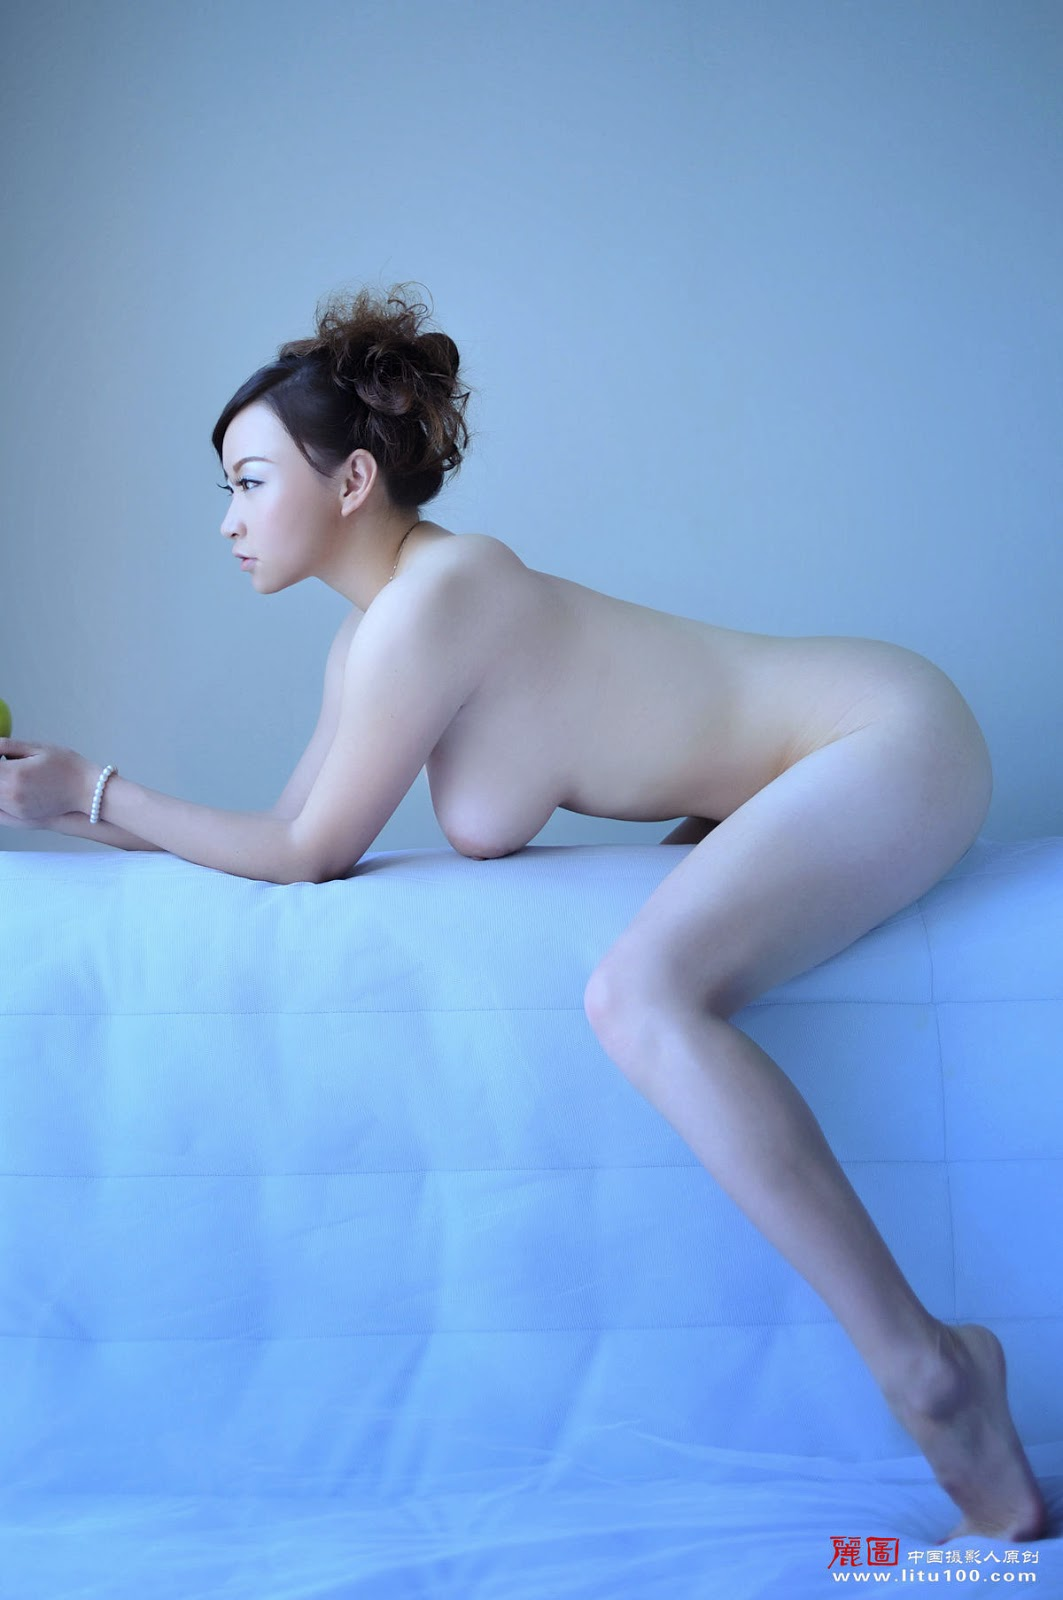 Would love chinese art nude complete perfect